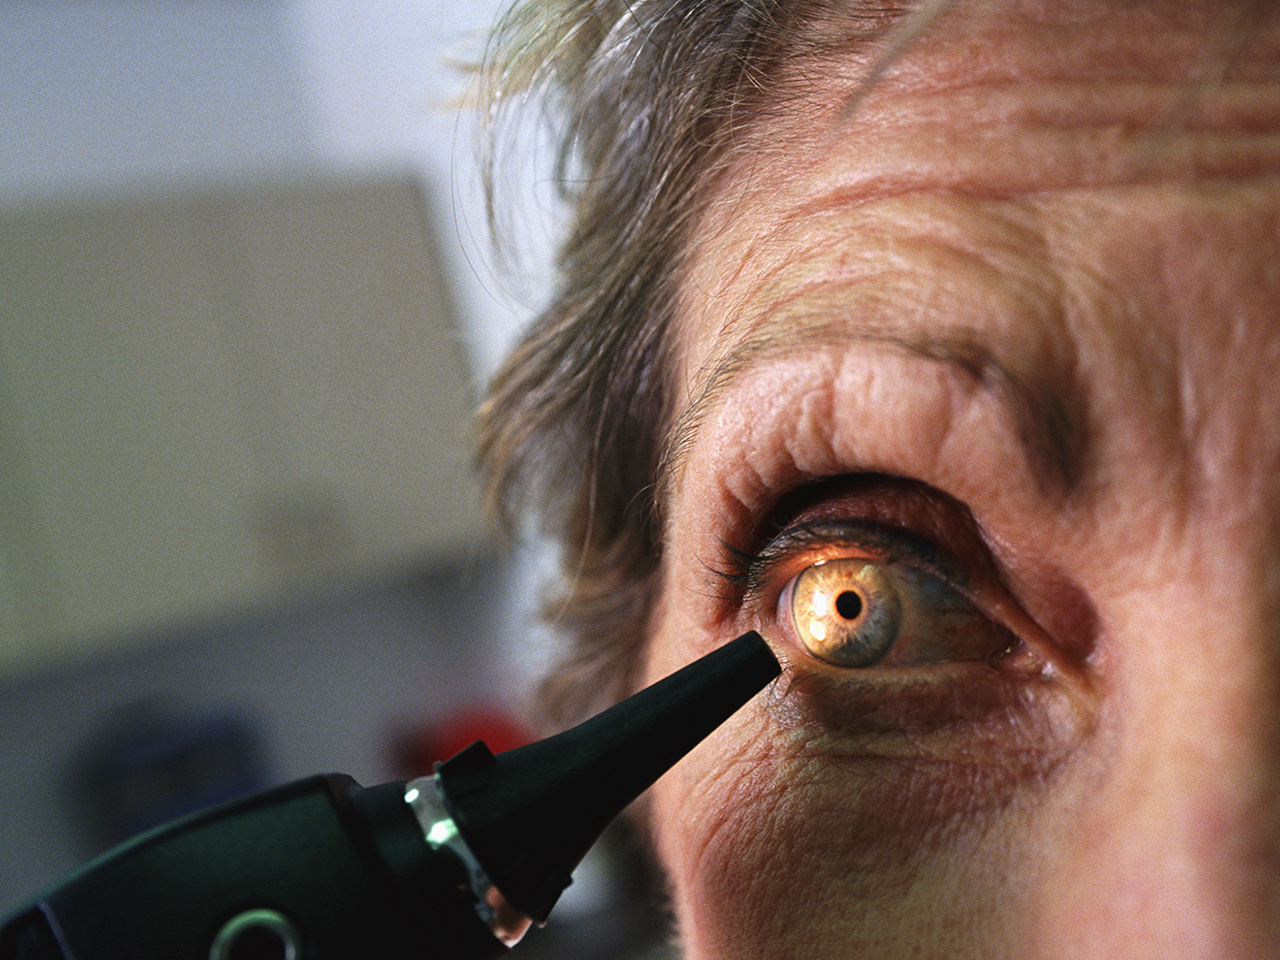 The Eye Condition 70 Of Adults Have Without Knowing The Eye Condition 70 Of Adults Have Without Knowing new photo